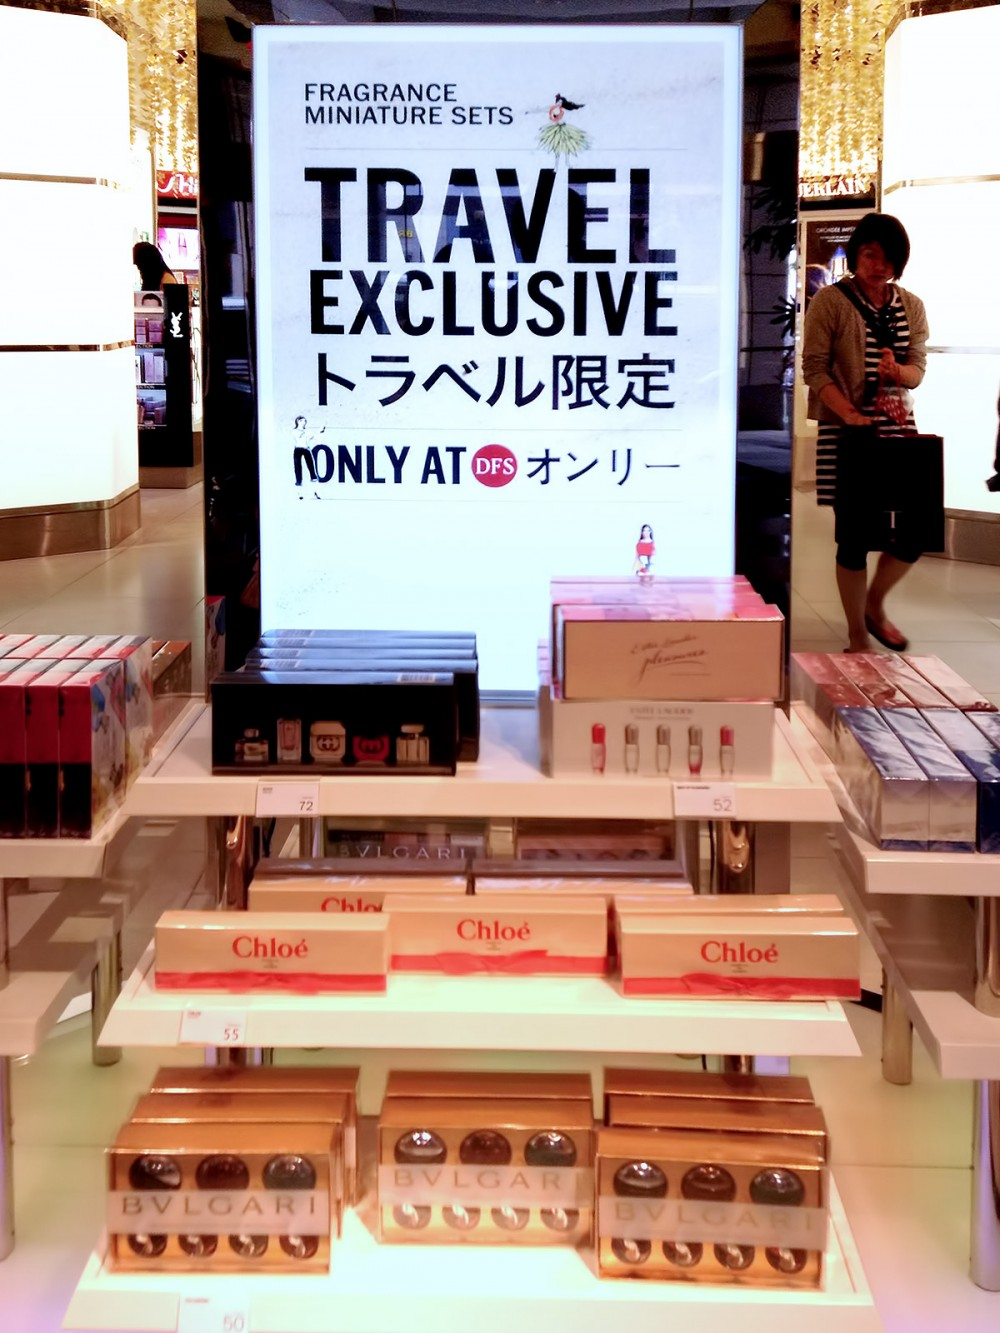 「TRAVEL EXCLUSIVE」免税店限定のミニ香水セット (Tギャラリア by DFS グアム)